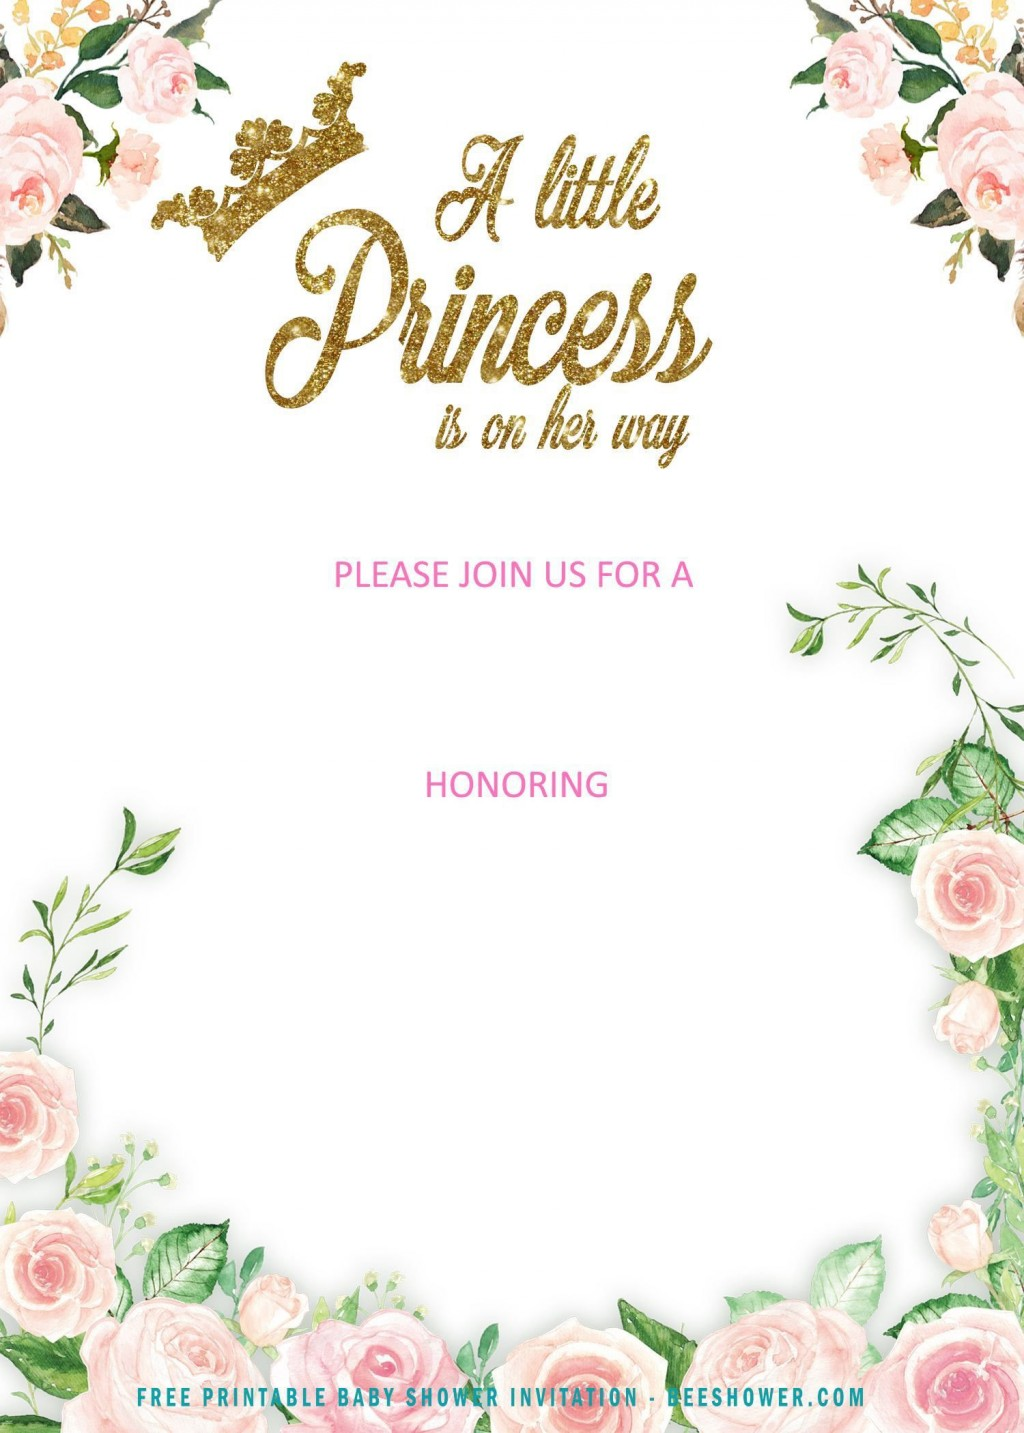 006 Incredible Free Princes Baby Shower Invitation Template For Word Sample Large